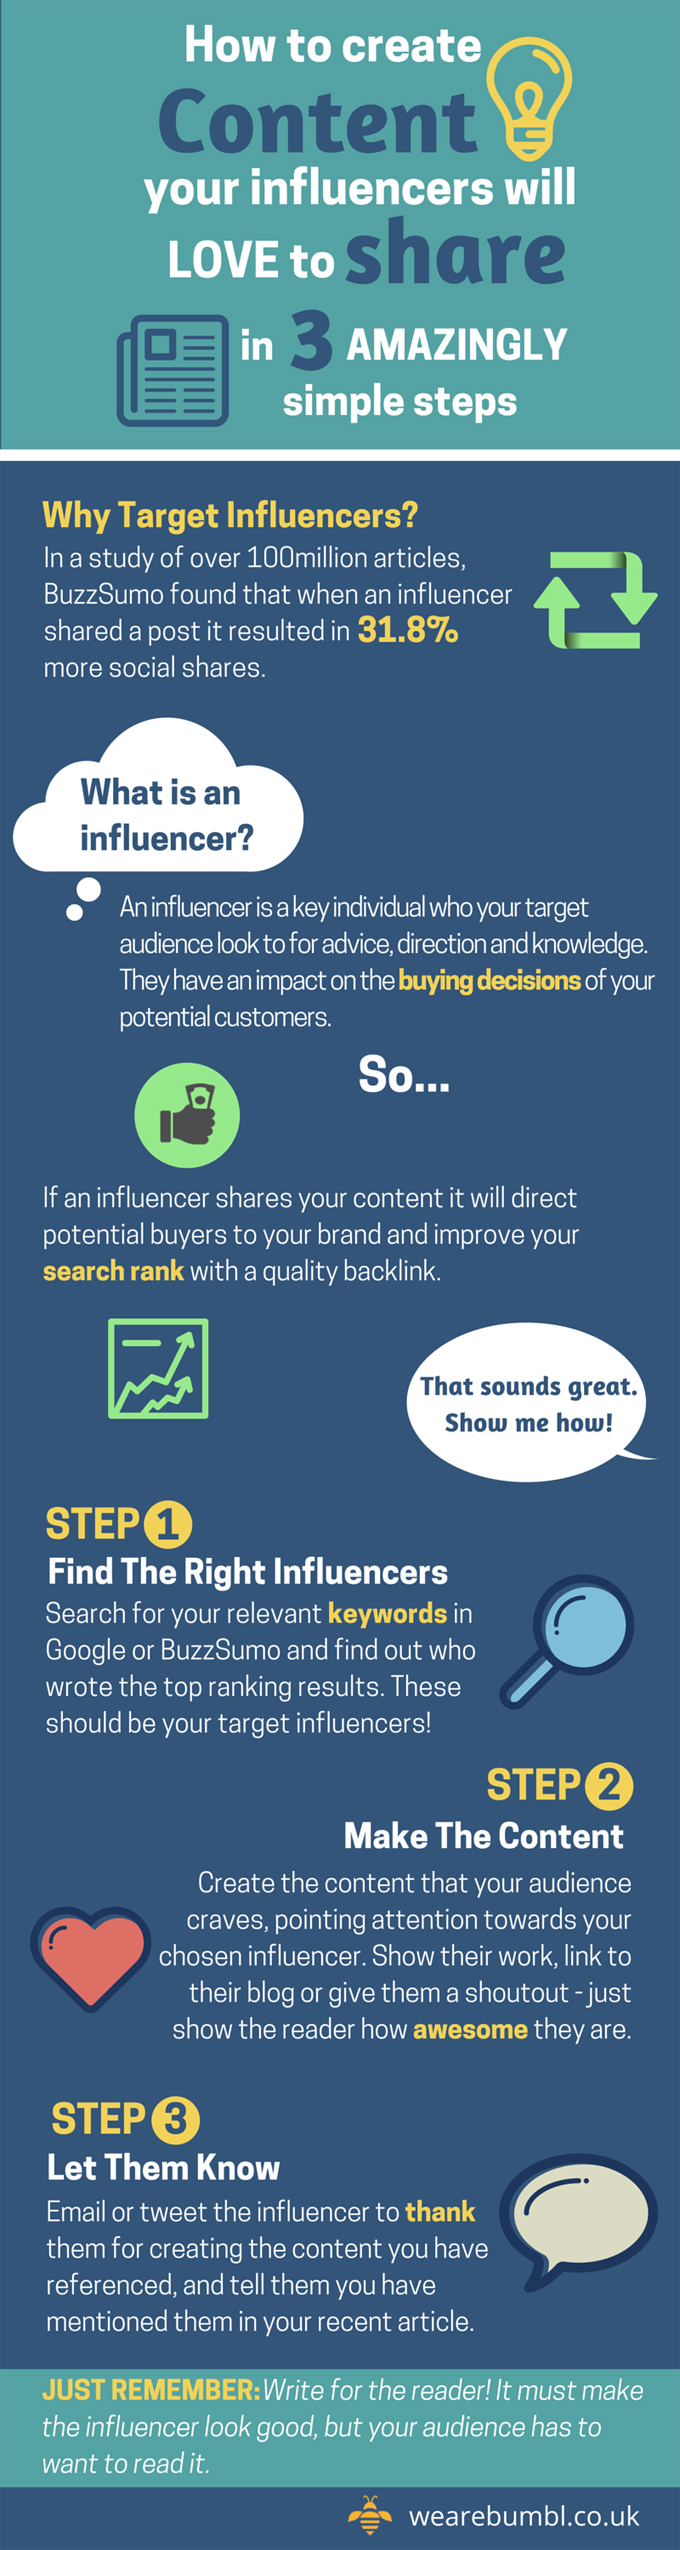 How to Create Content Influencers Will Love to Share